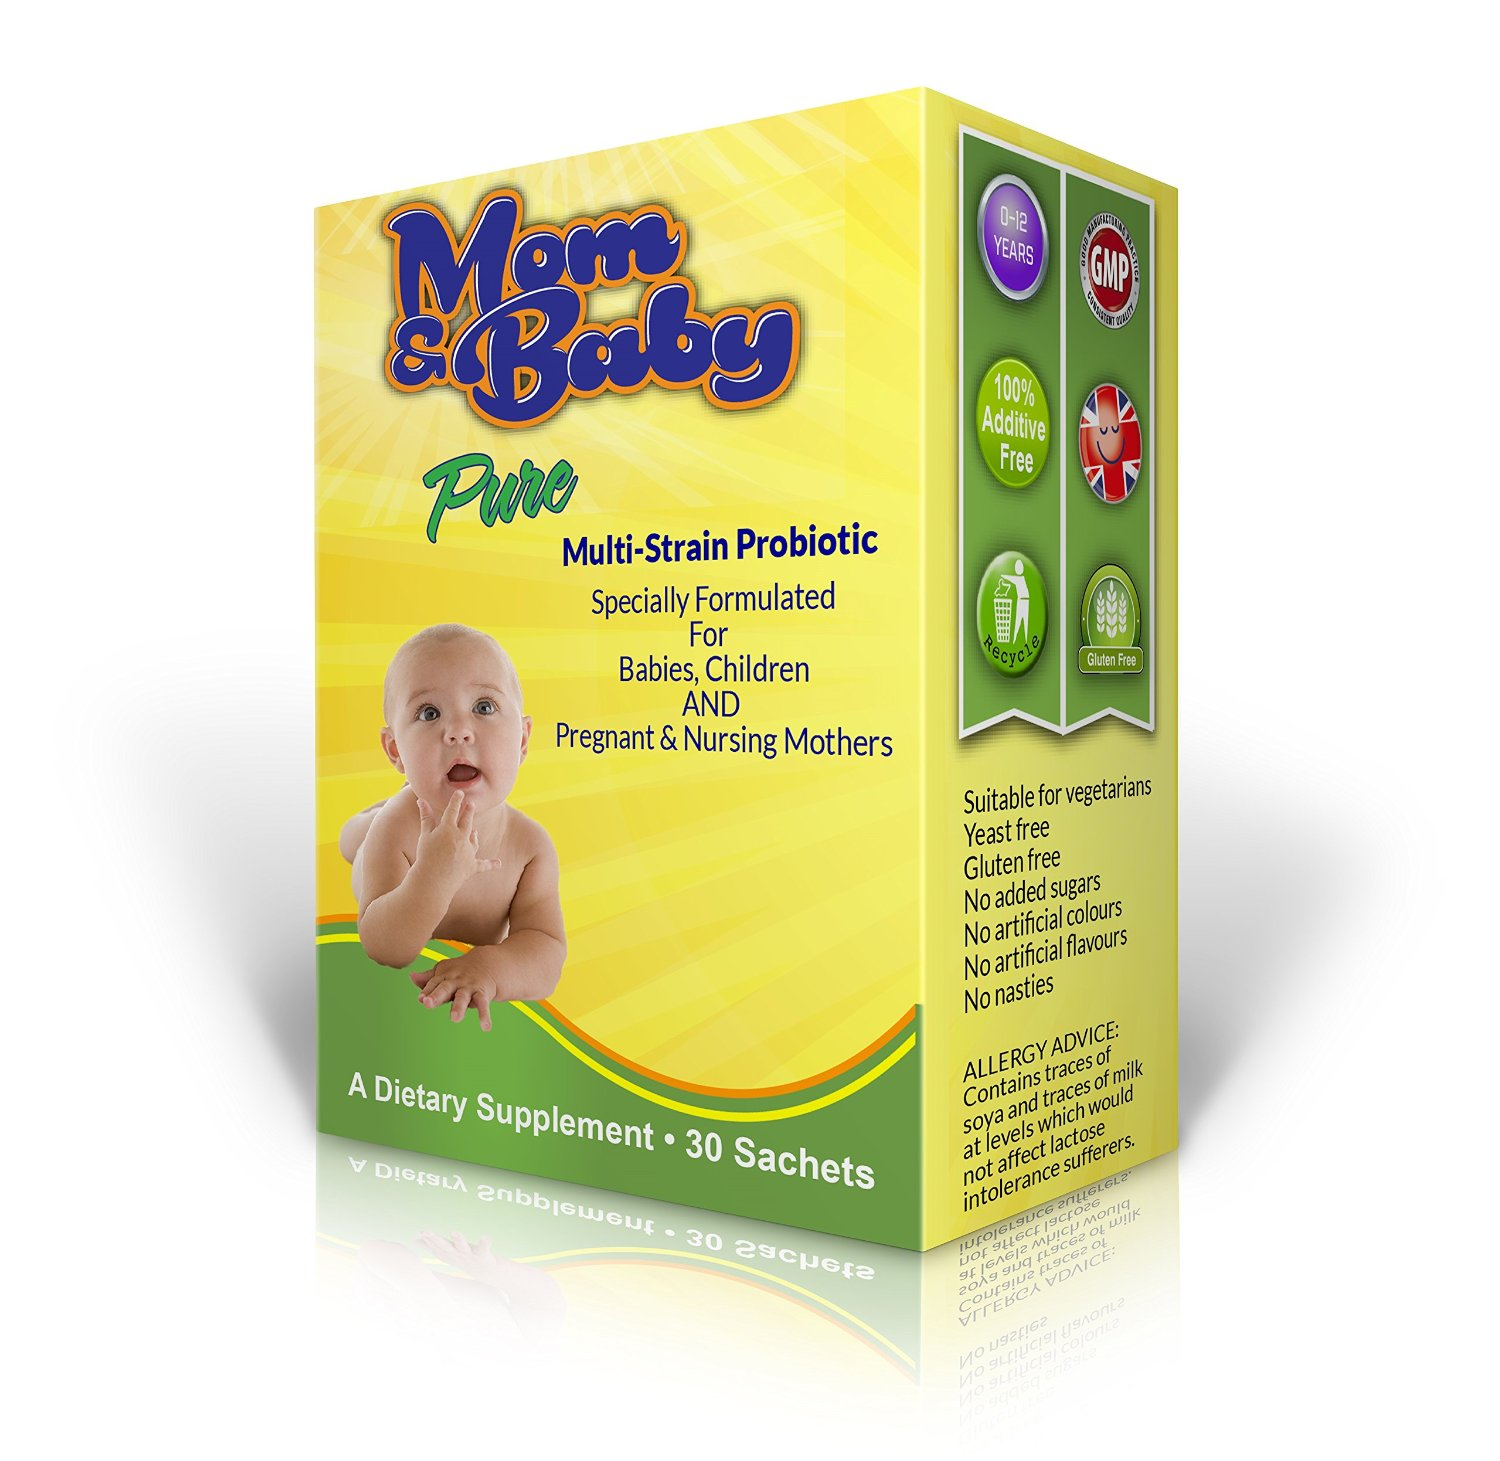 Mom & Baby Pure Probiotic - 30 sachets - Easy Mom and Baby